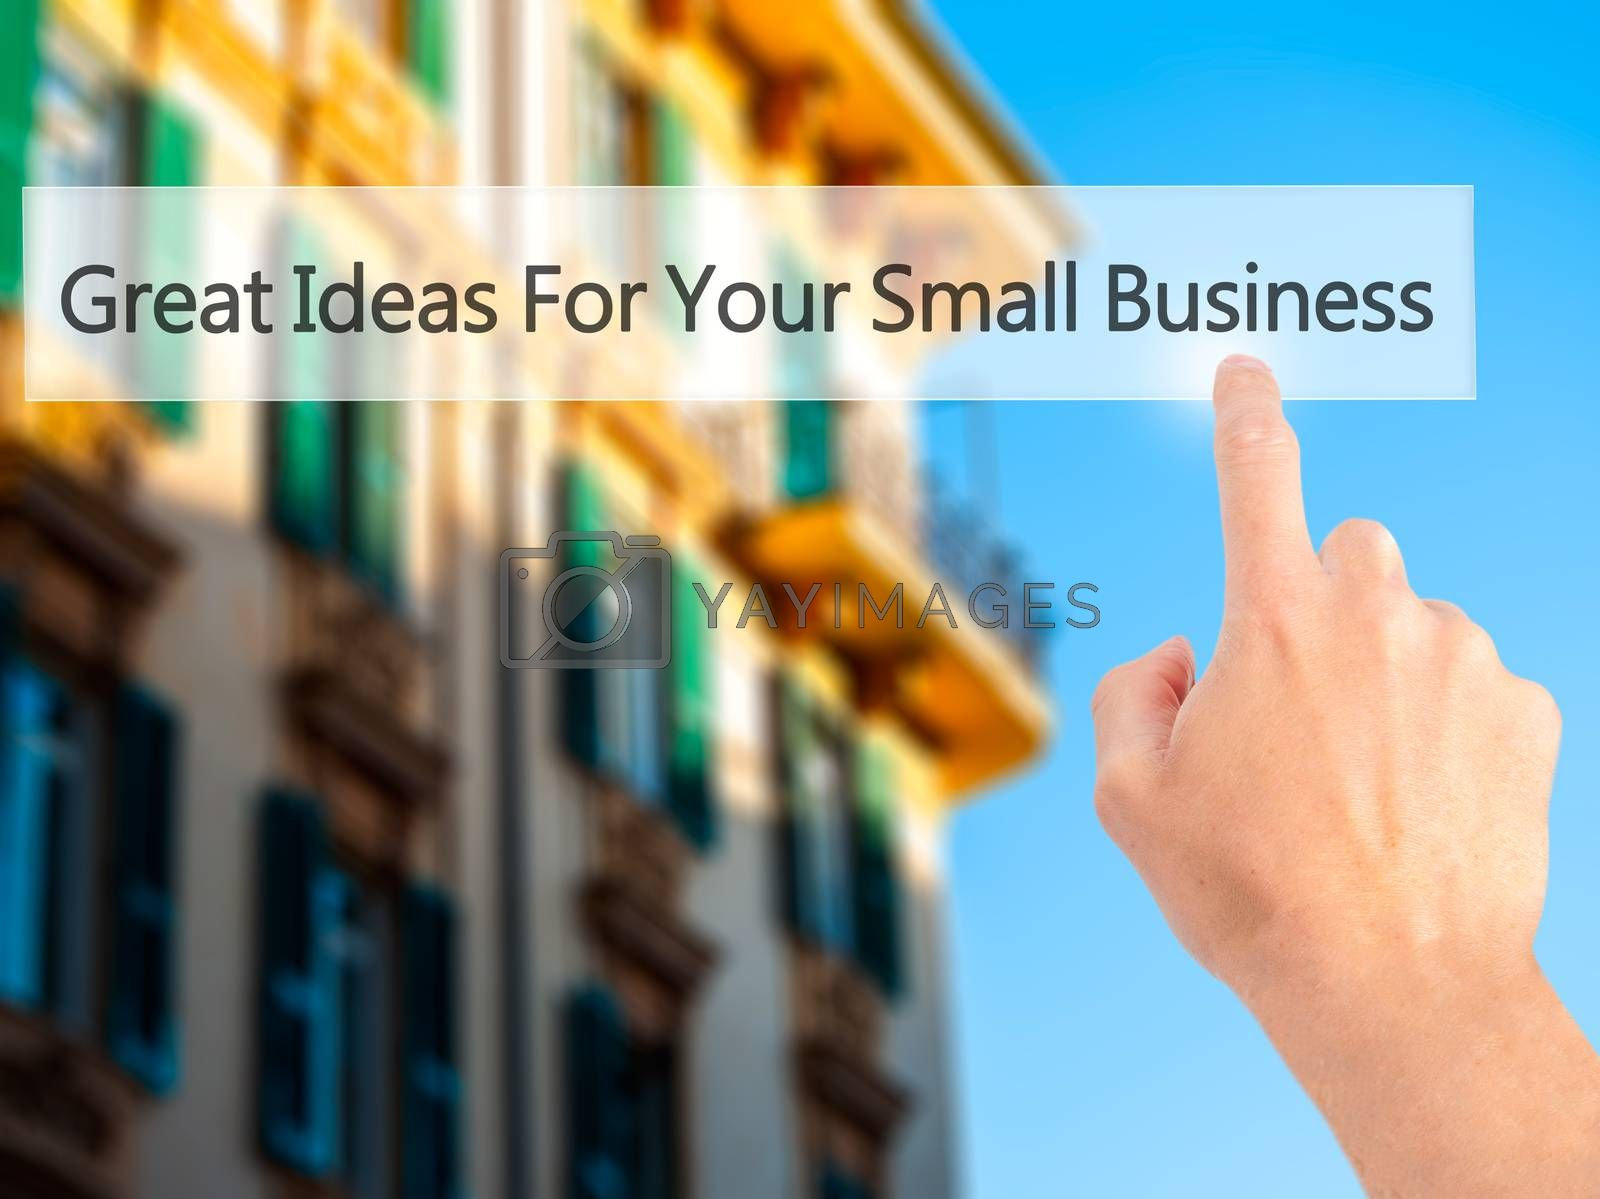 Great Ideas For Your Small Business - Hand pressing a button on  by jackald